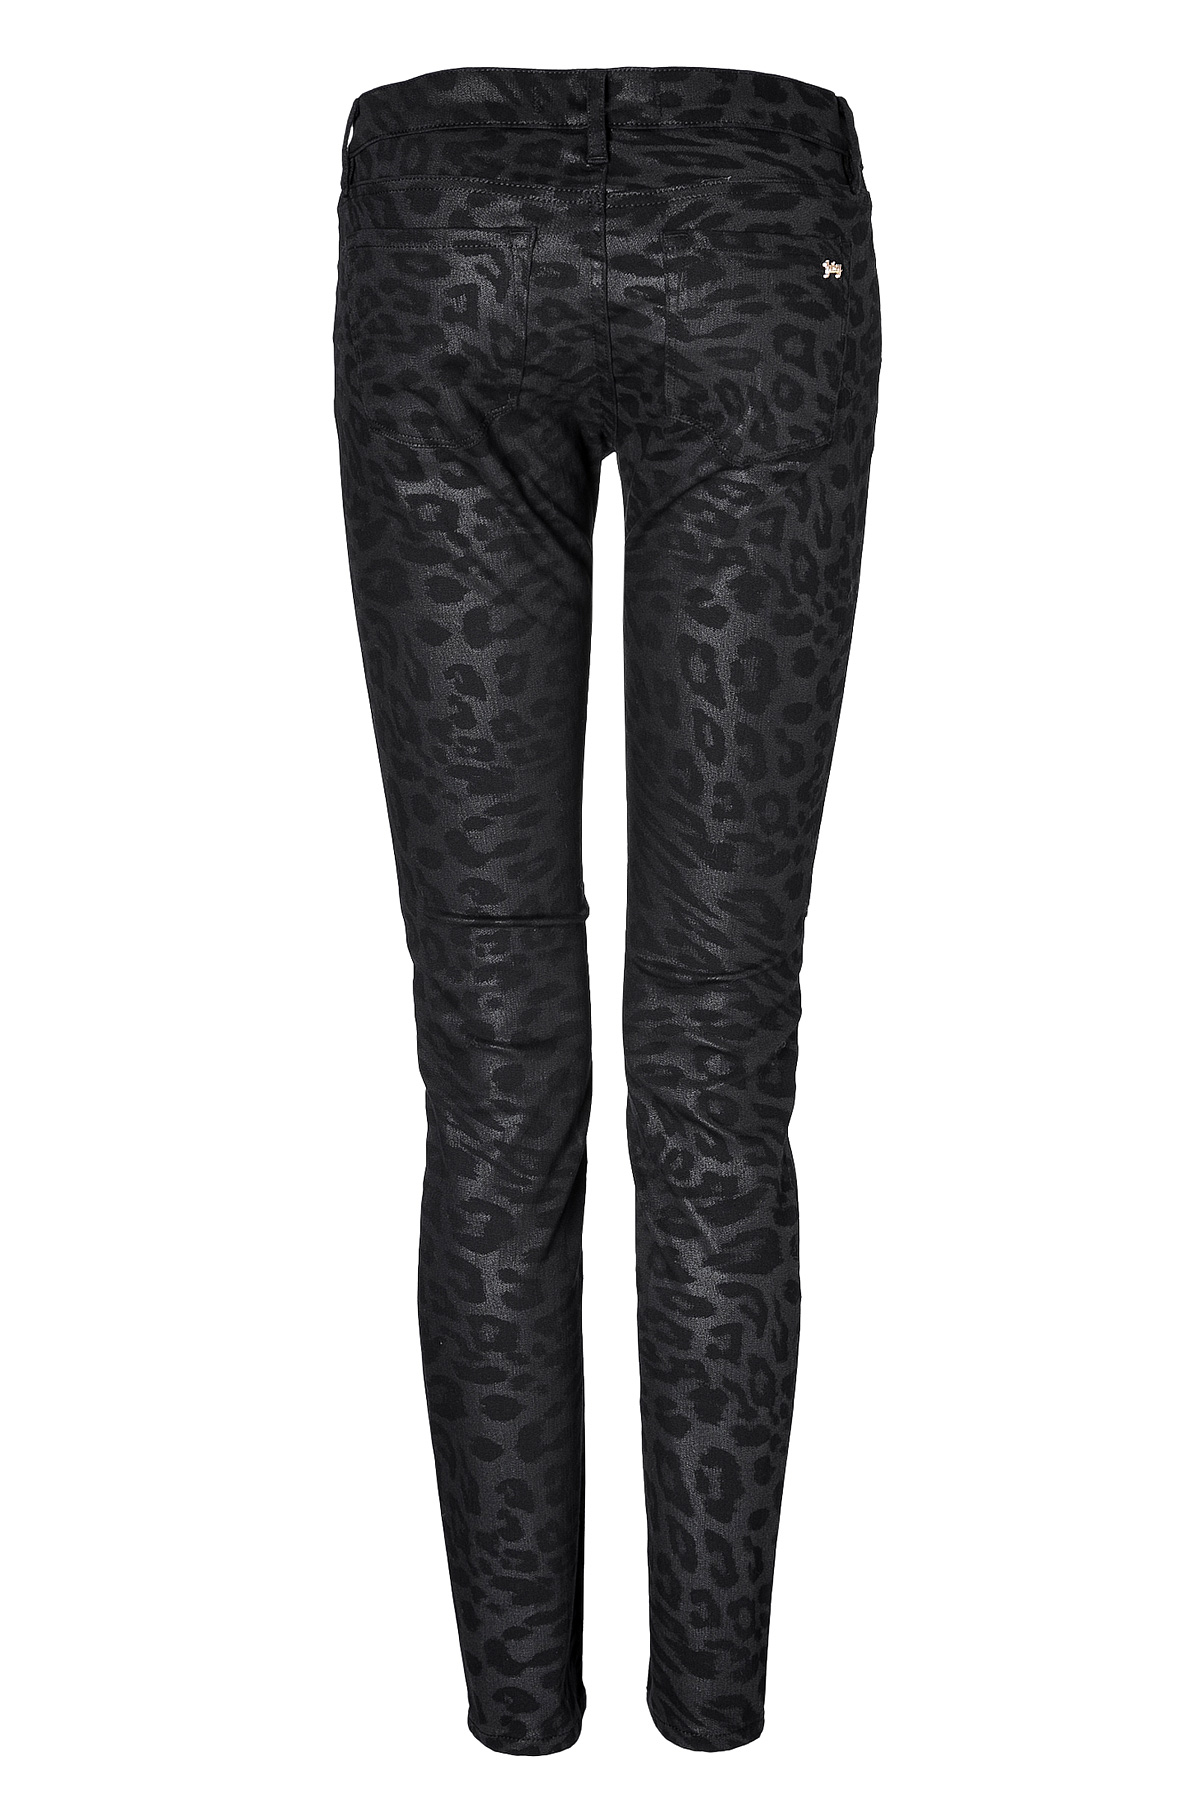 Skinny Ankle Jeans For Women